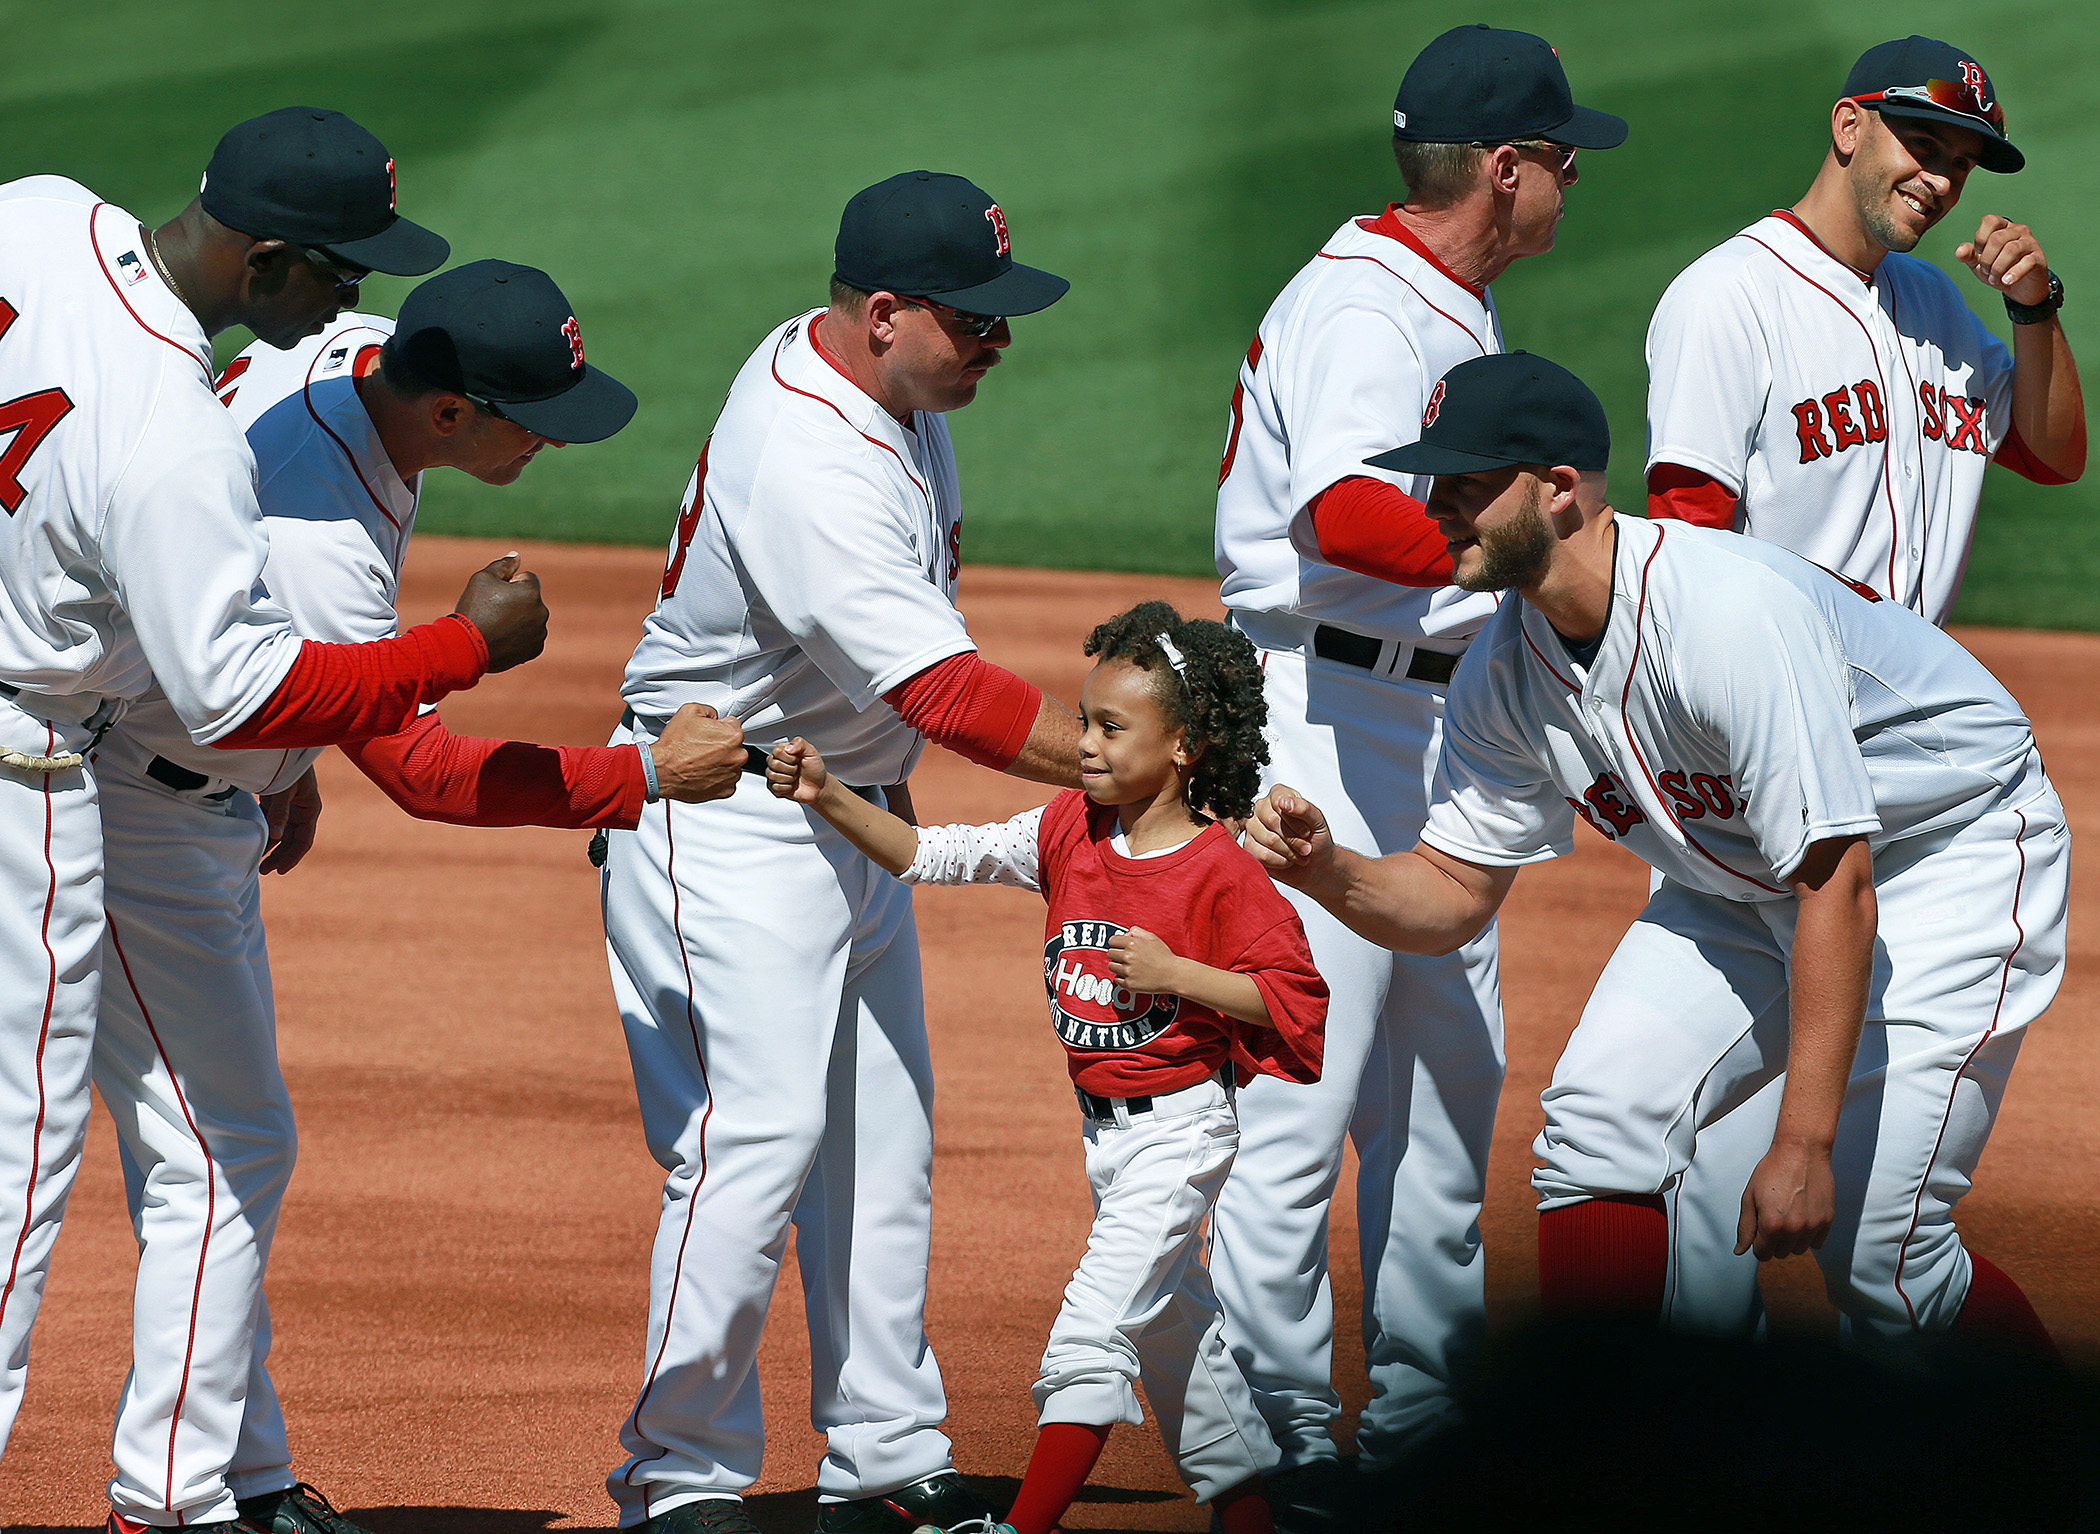 As part of a season-long program titled  Calling All Kids , the players of the Boston Red Sox were accompanied by children during pre-game introductions.